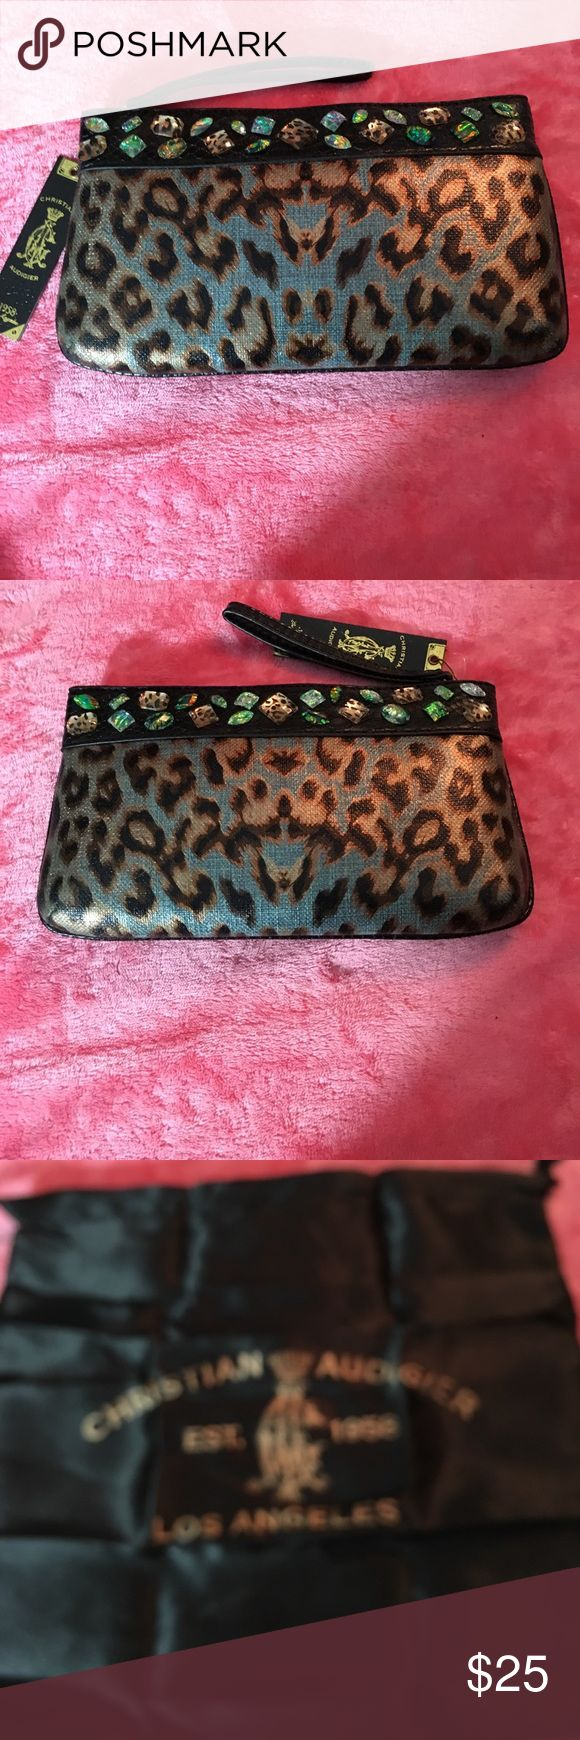 """Christian Audigier Animal Print Clutch with Stones Christian Audigier clutch bag with detachable wrist strap and magnetic closure.  Linen look turquoise background with gold, bronze & black animal print design.  Multi color stones encircle the top of the clutch. 11"""" wide 6 1/2"""" high.  Dust cover with drawstring included. Christian Audigier Bags Clutches & Wristlets"""